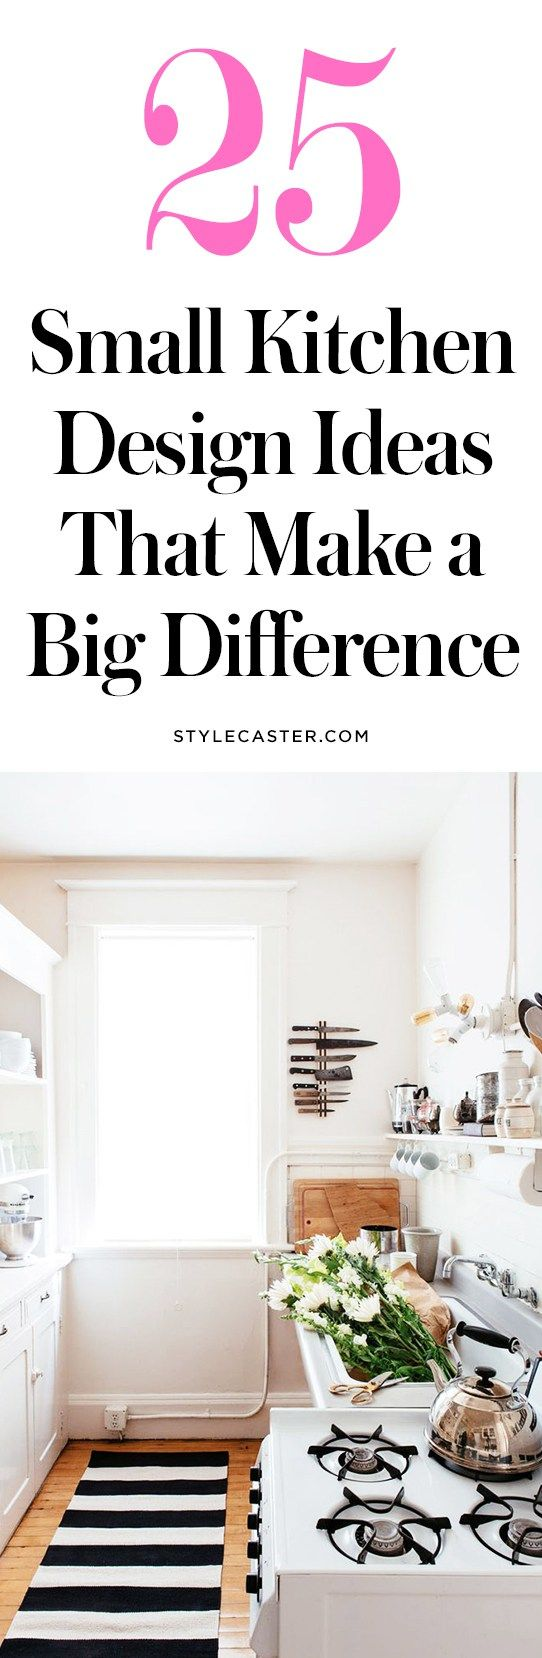 25 Small Kitchen Design Ideas | Storage solution and decor tricks to maximize your space | @stylecaster